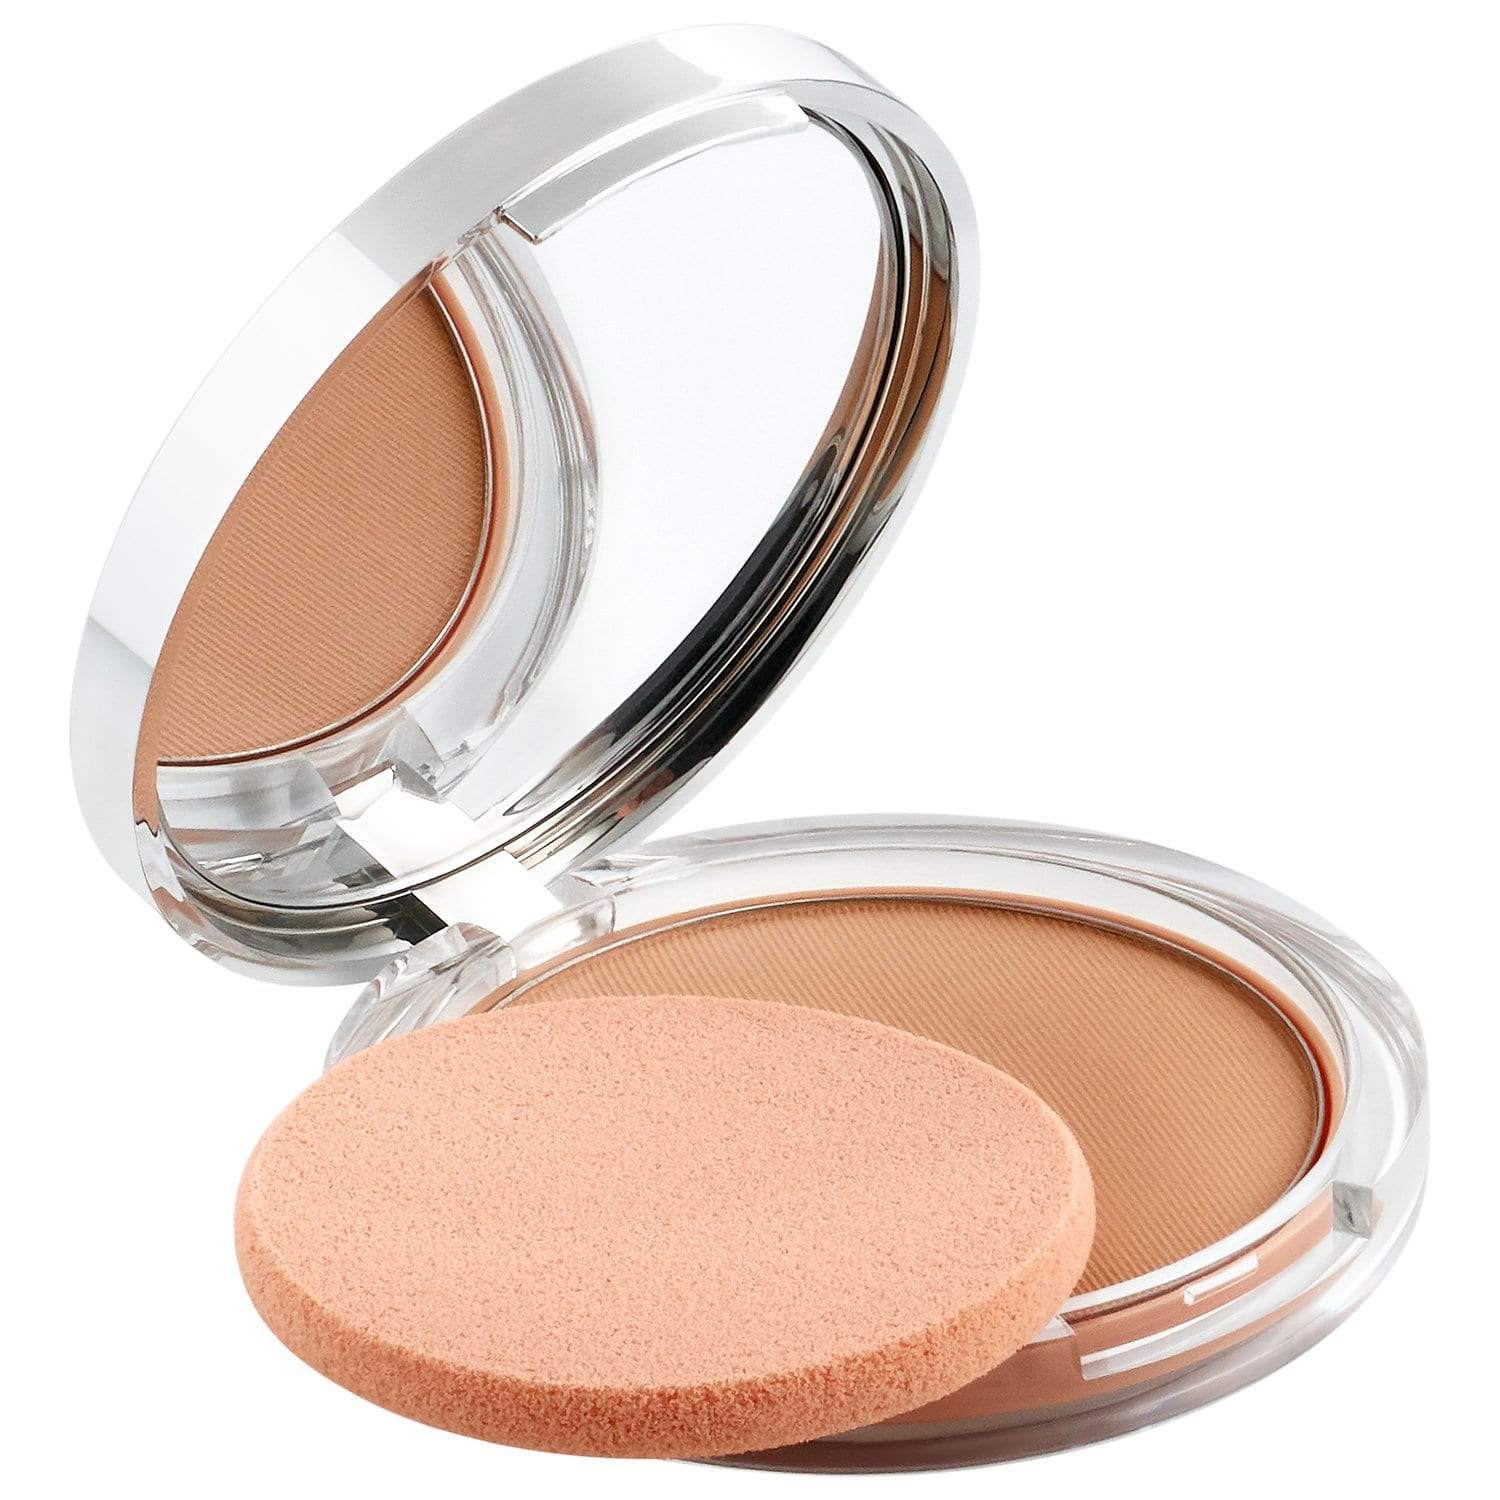 pressed powder in compact with mirror and thin sponge applicator